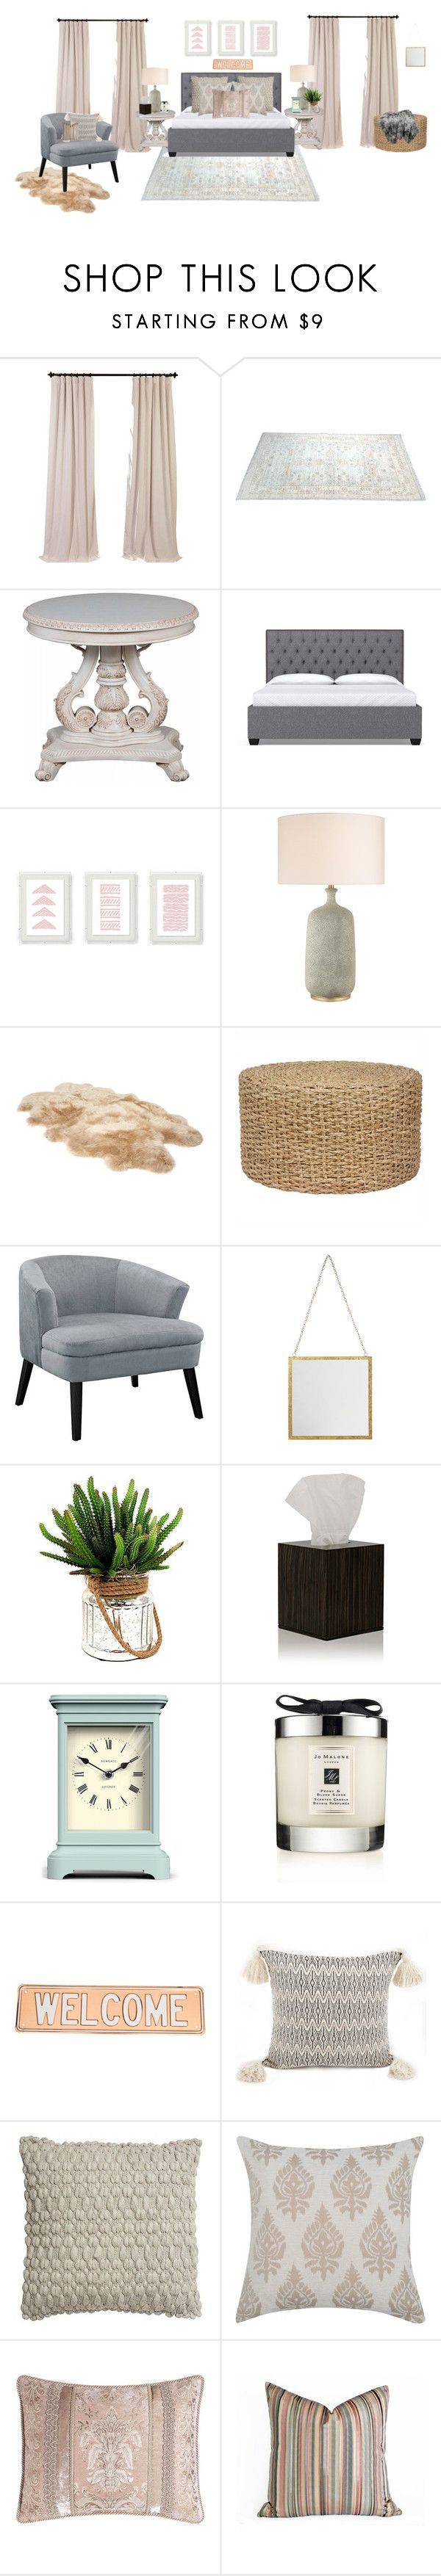 """""""Neutral Guest Bedroom"""" by jet1397 ❤ liked on Polyvore featuring interior, interiors, interior design, home, home decor, interior decorating, UGG, iWOODESIGN, Newgate and Jo Malone"""